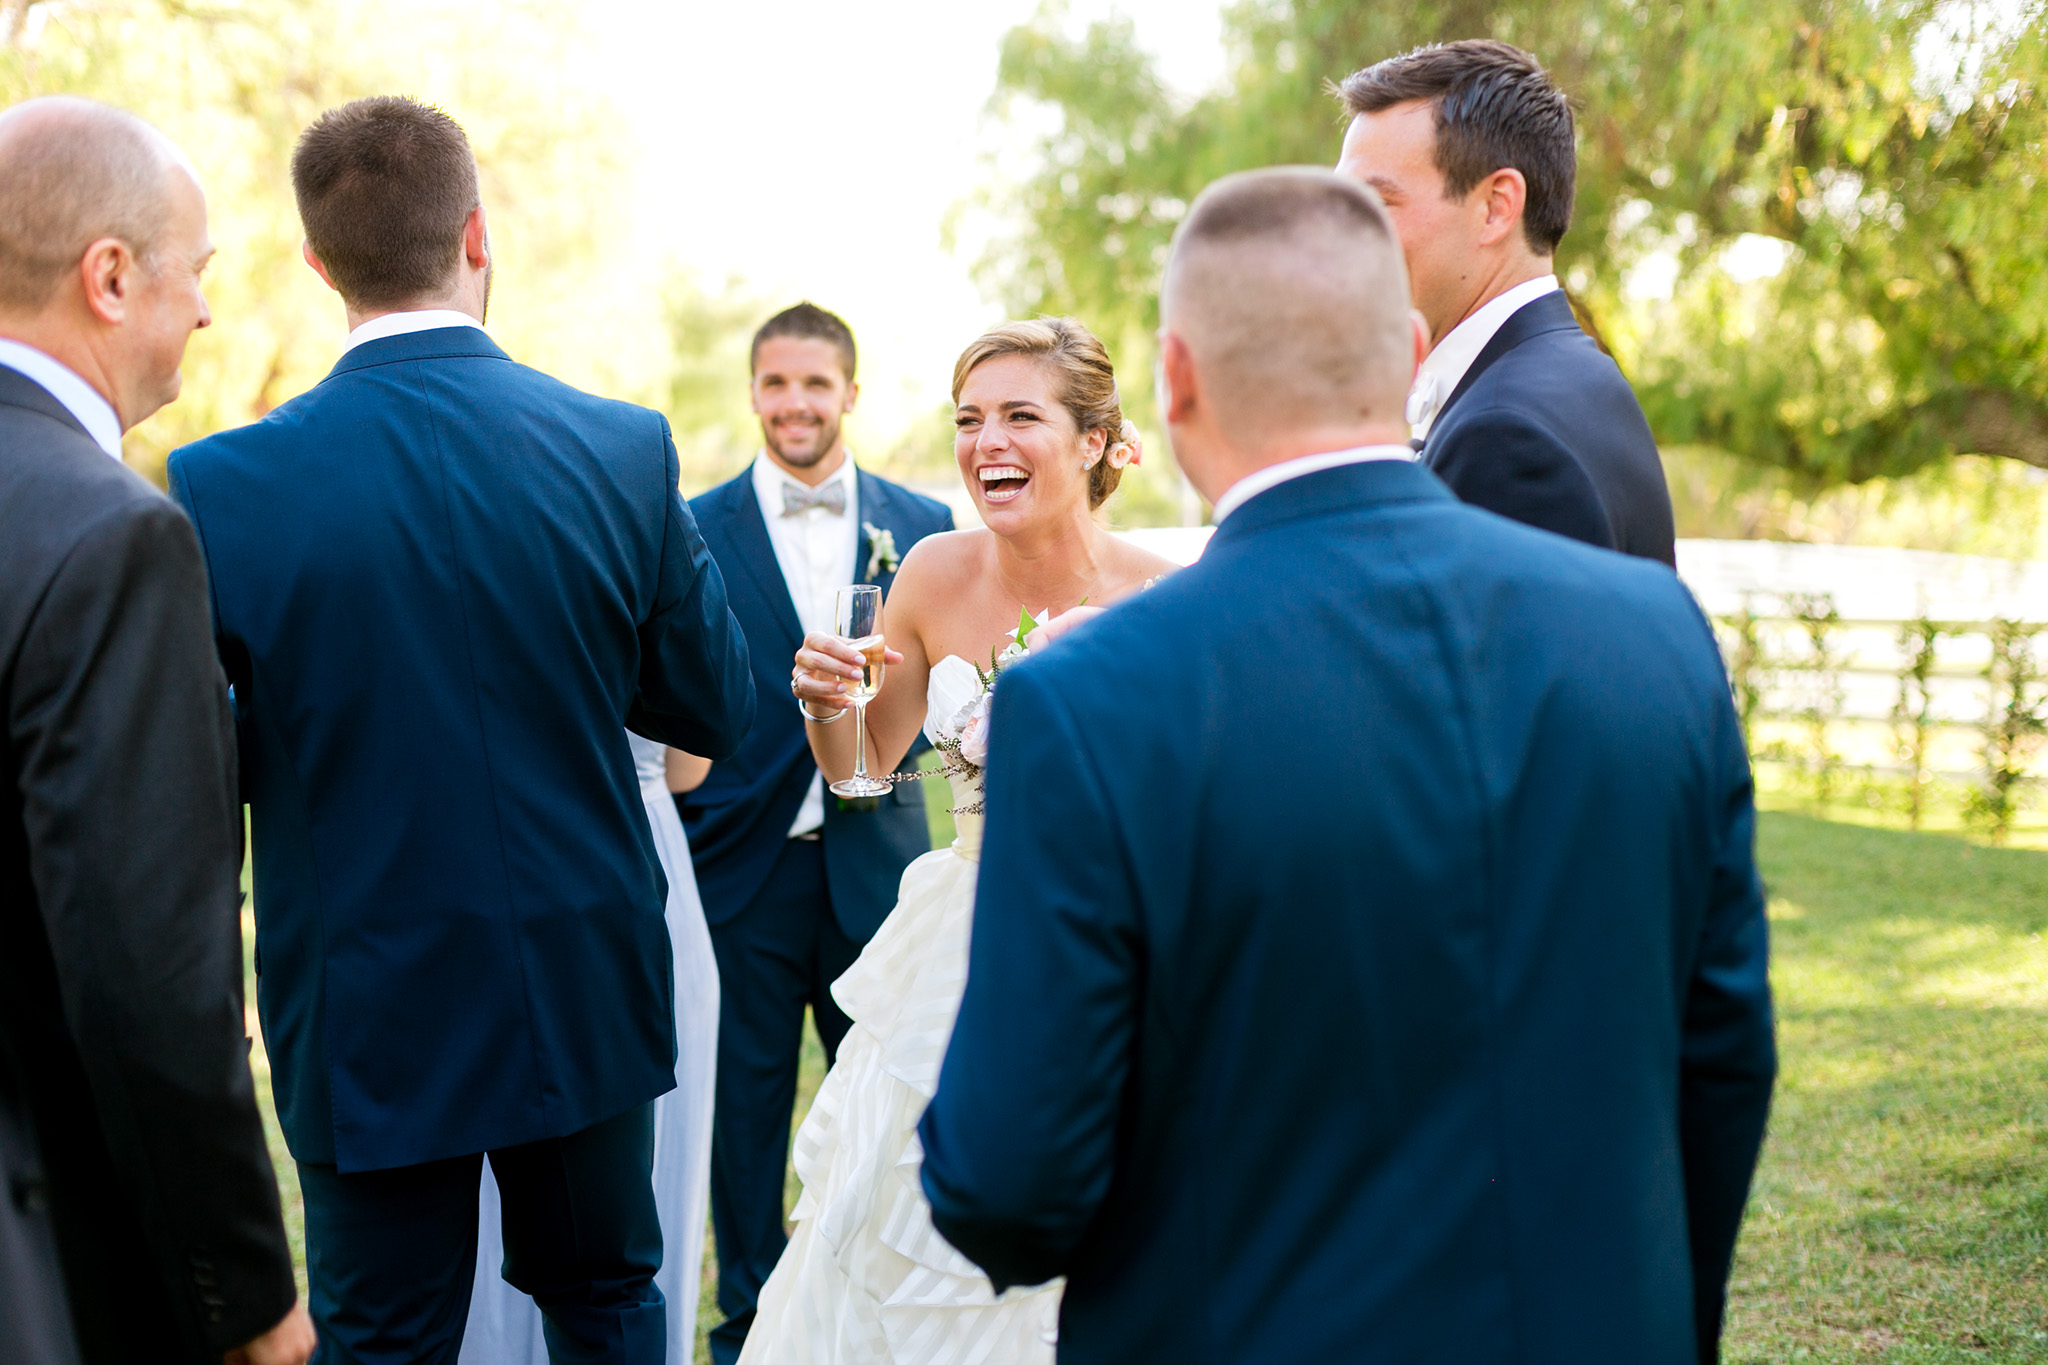 Candid photo of bride laughing with her wedding party